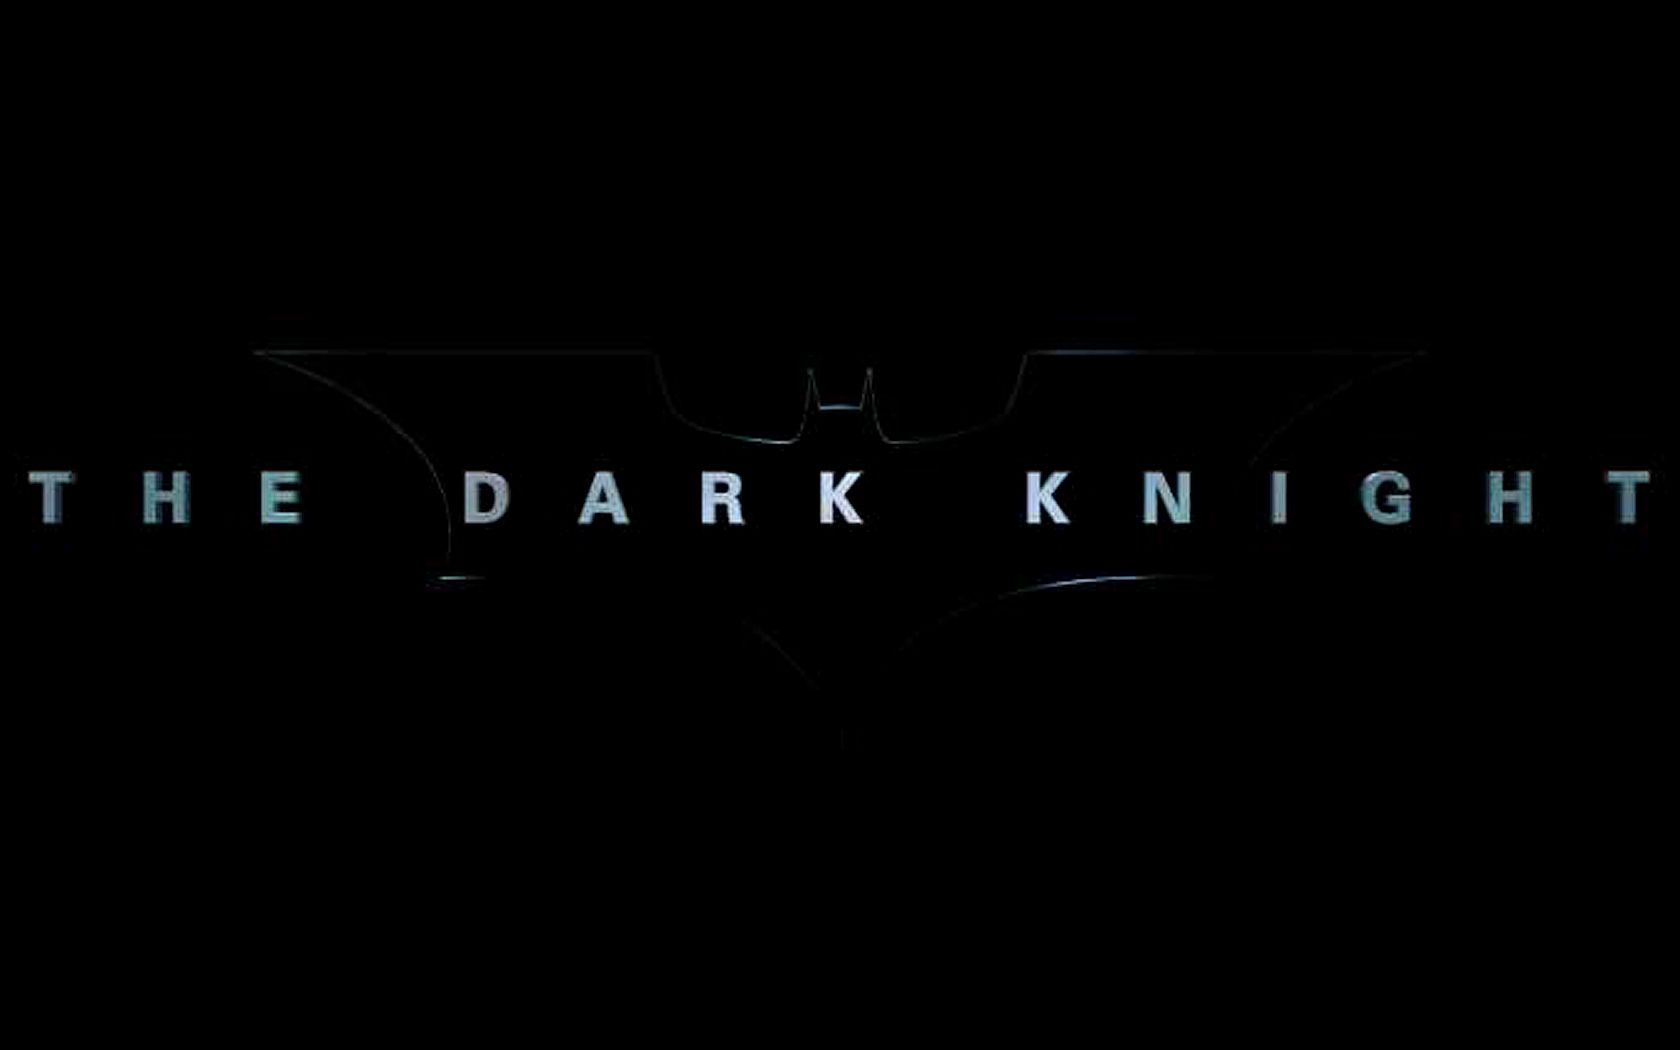 The Dark Knight Title Poster Wallpaper 1680x1050